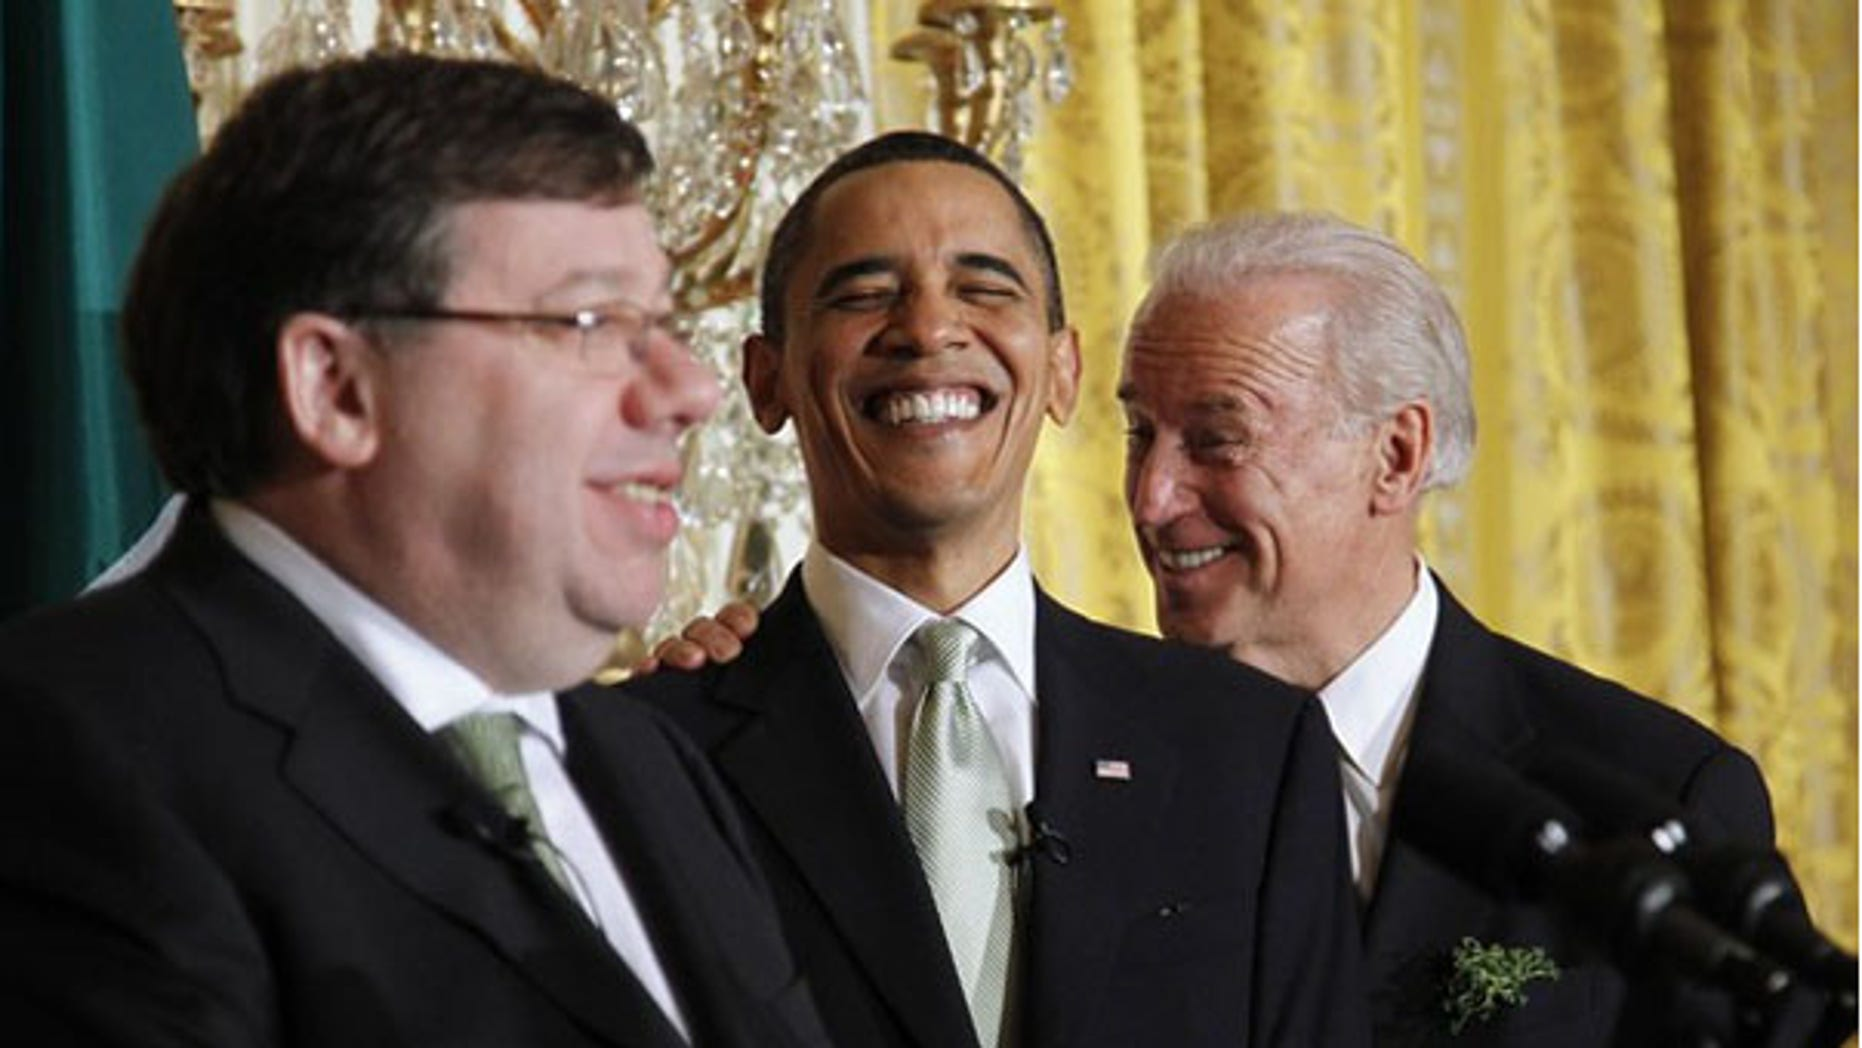 President Obama reacts to remarks by Vice President Biden as Irish Prime Minister Brian Cowen, left, speaks at a St. Patricks Day reception at the White House March 17. (Reuters Photo)